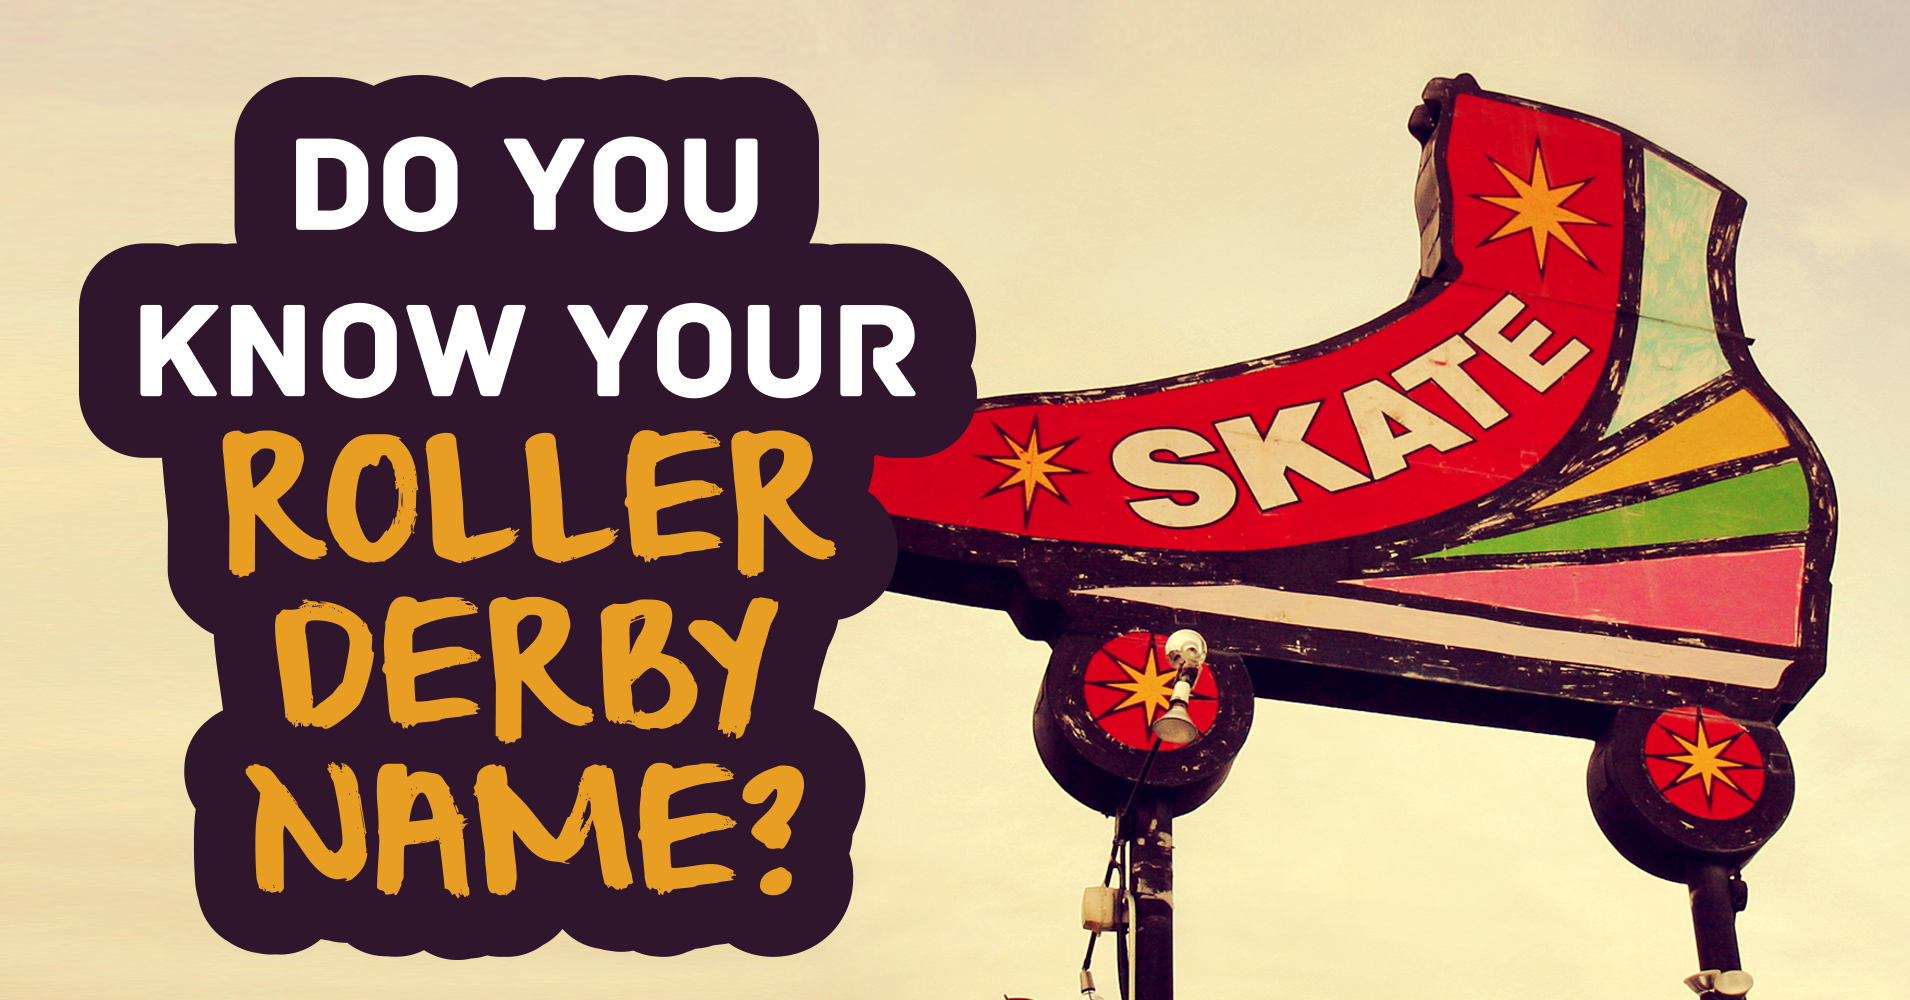 do you know your roller derby name? - quiz - quizony